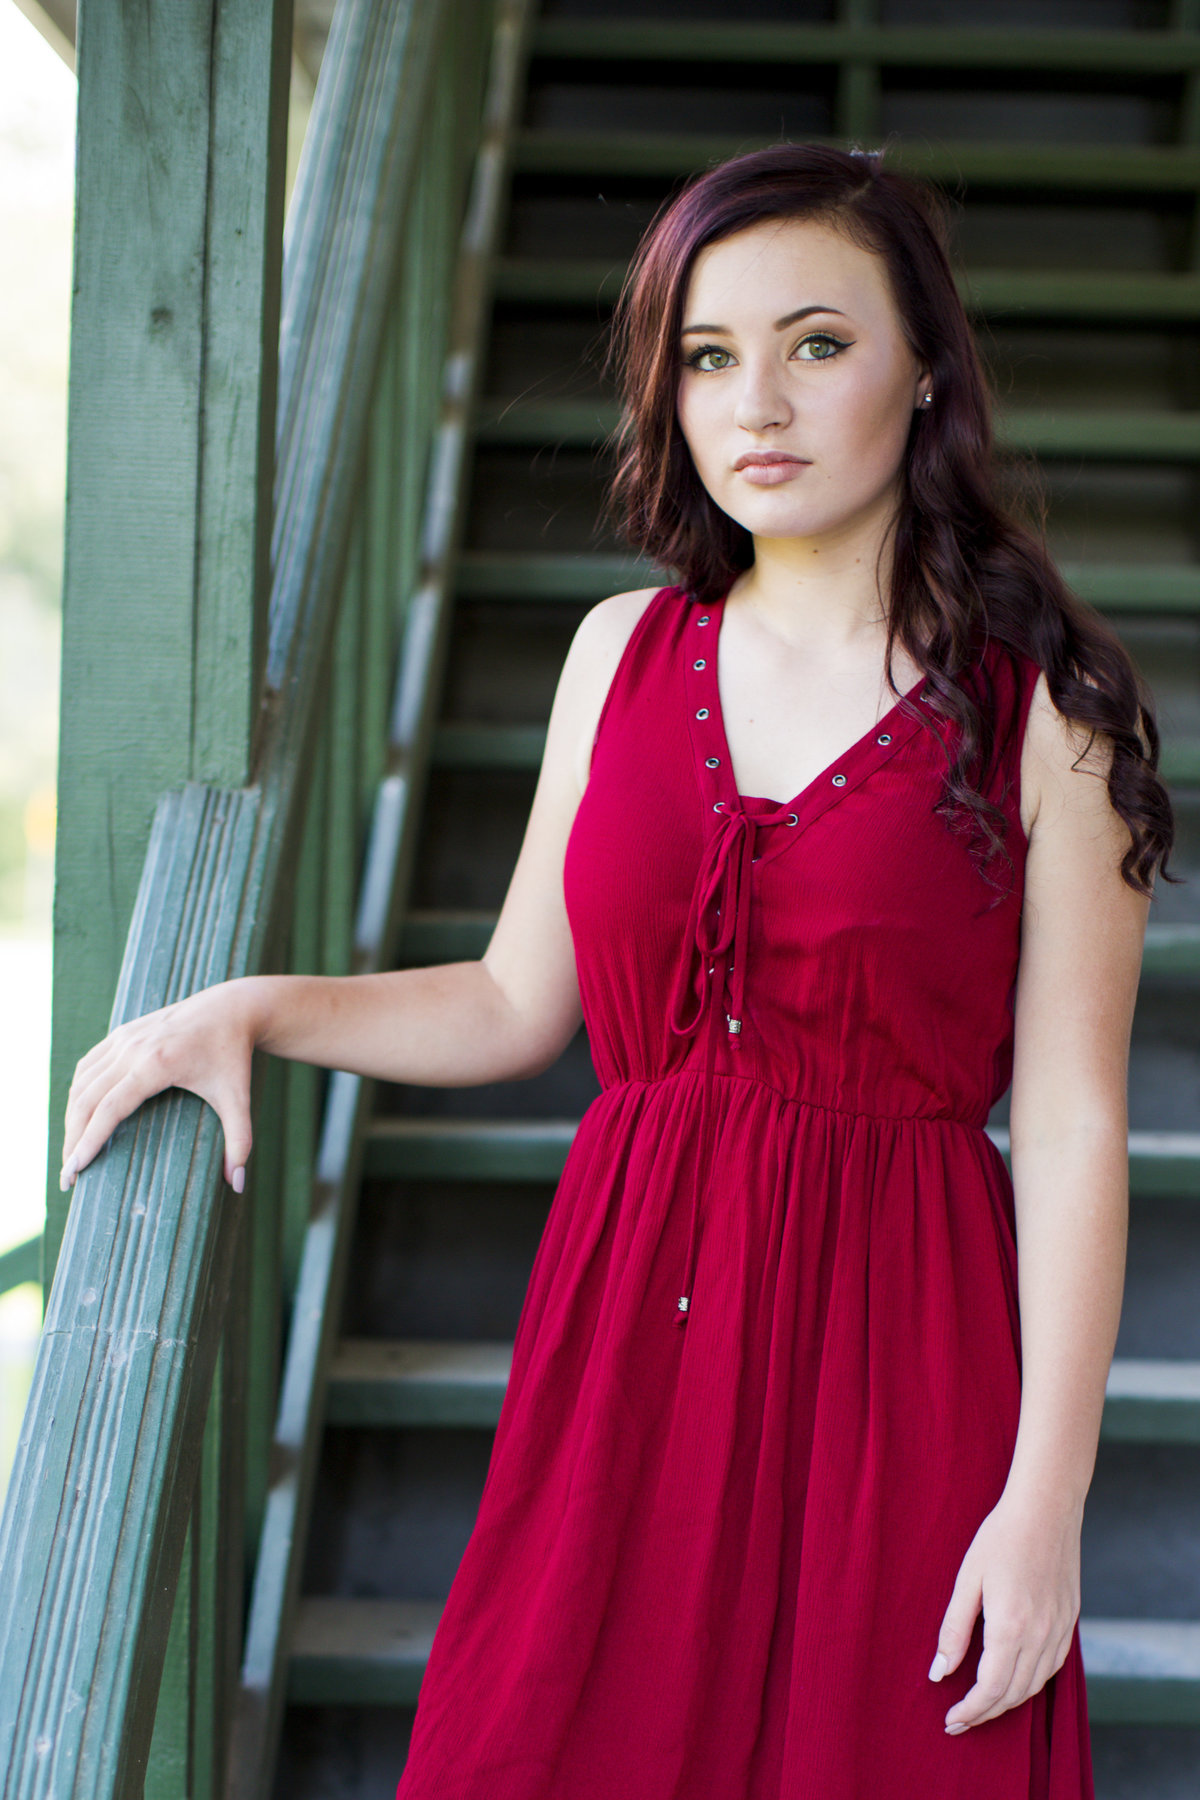 perry-georgia-senior_photographer-jlfarmer-7009